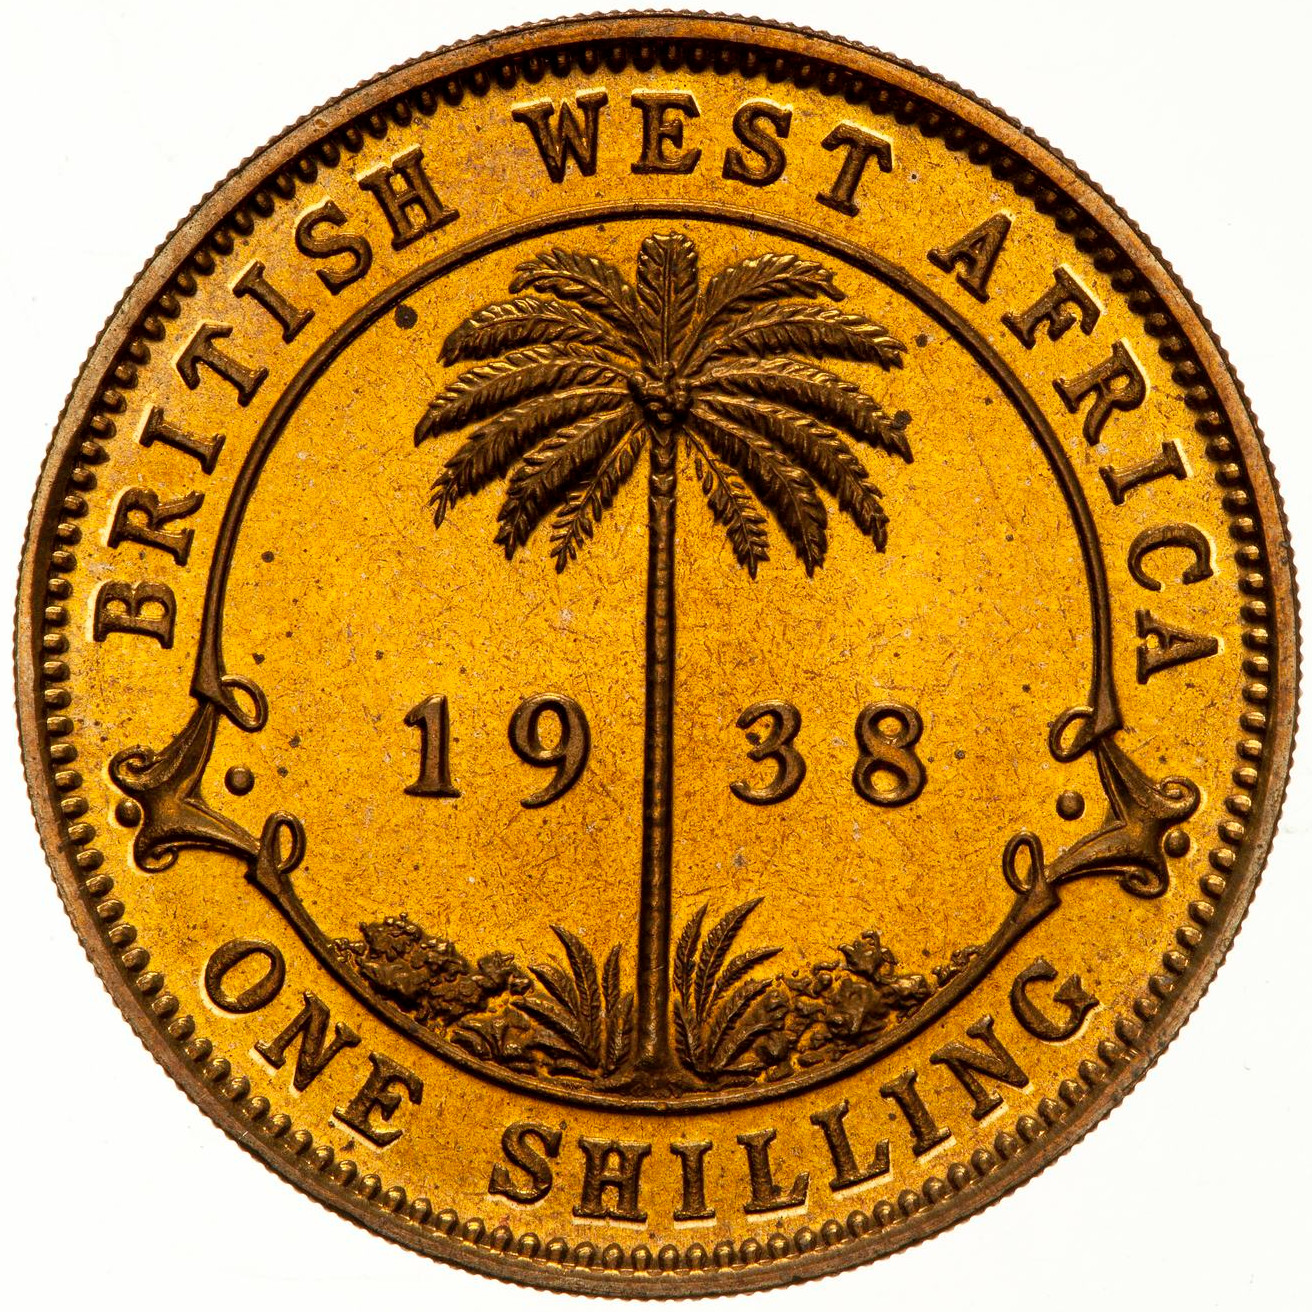 Shilling (Nickel Brass): Photo Proof Coin - 1 Shilling, British West Africa, 1938